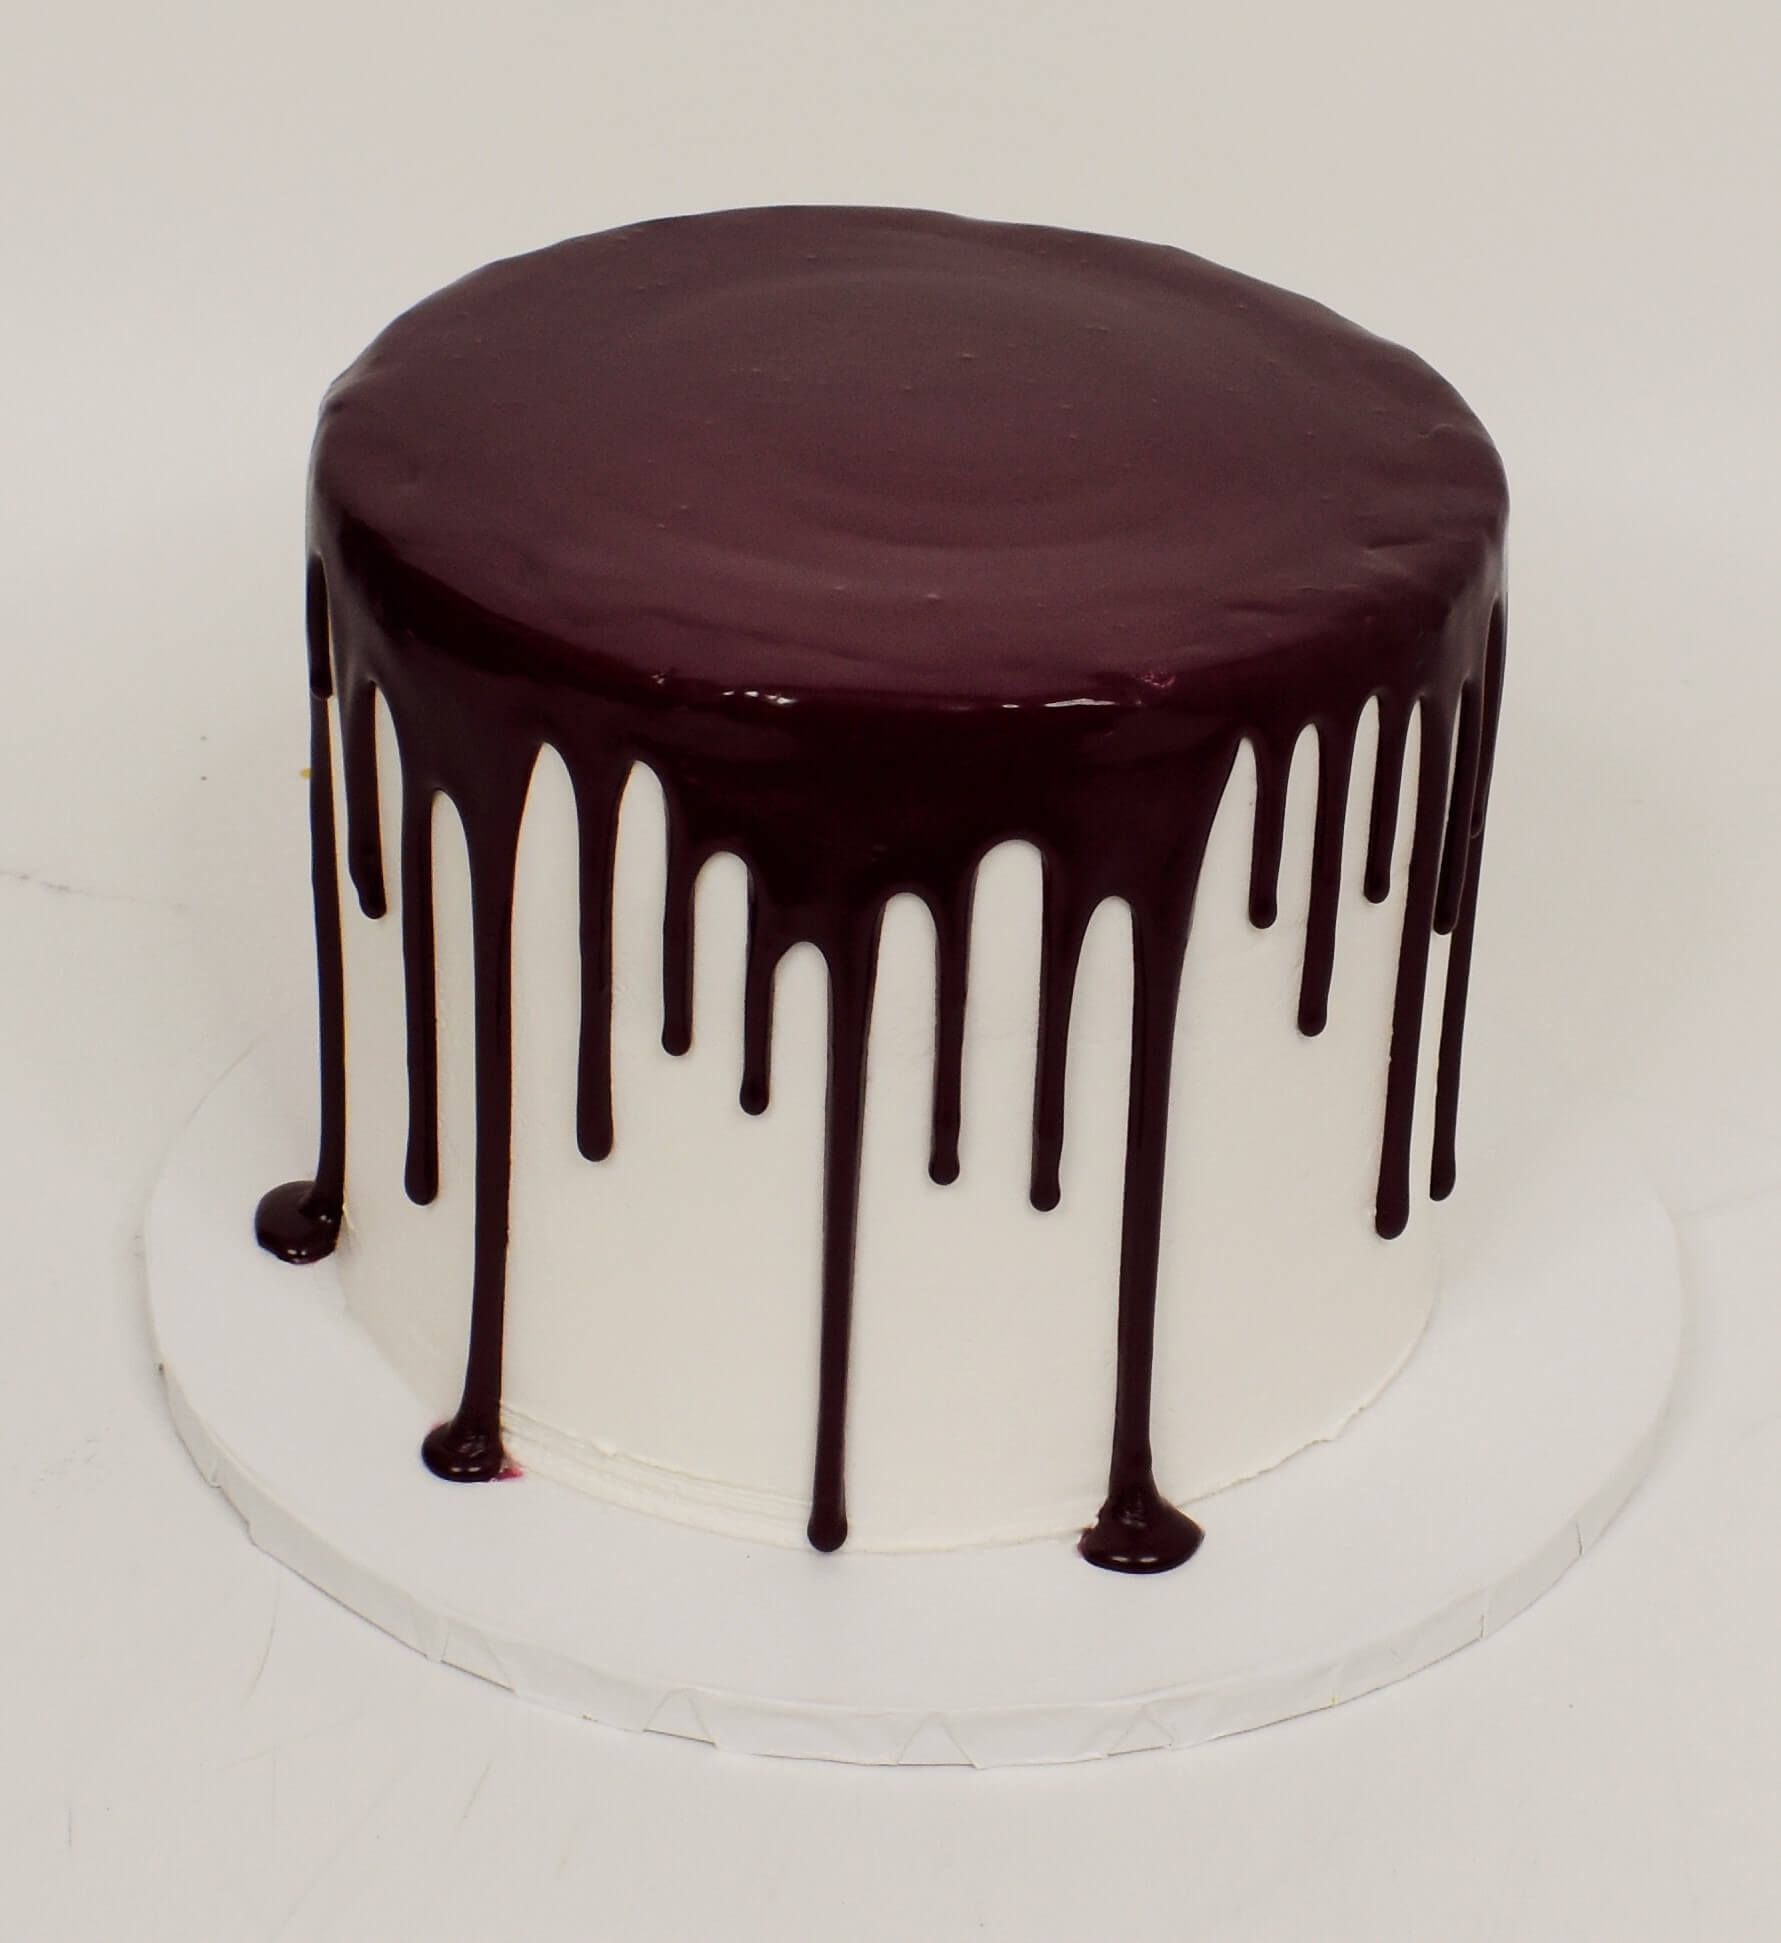 McArthur's Bakery Custom Cake With Chocolate Icing Dripping Down Cake